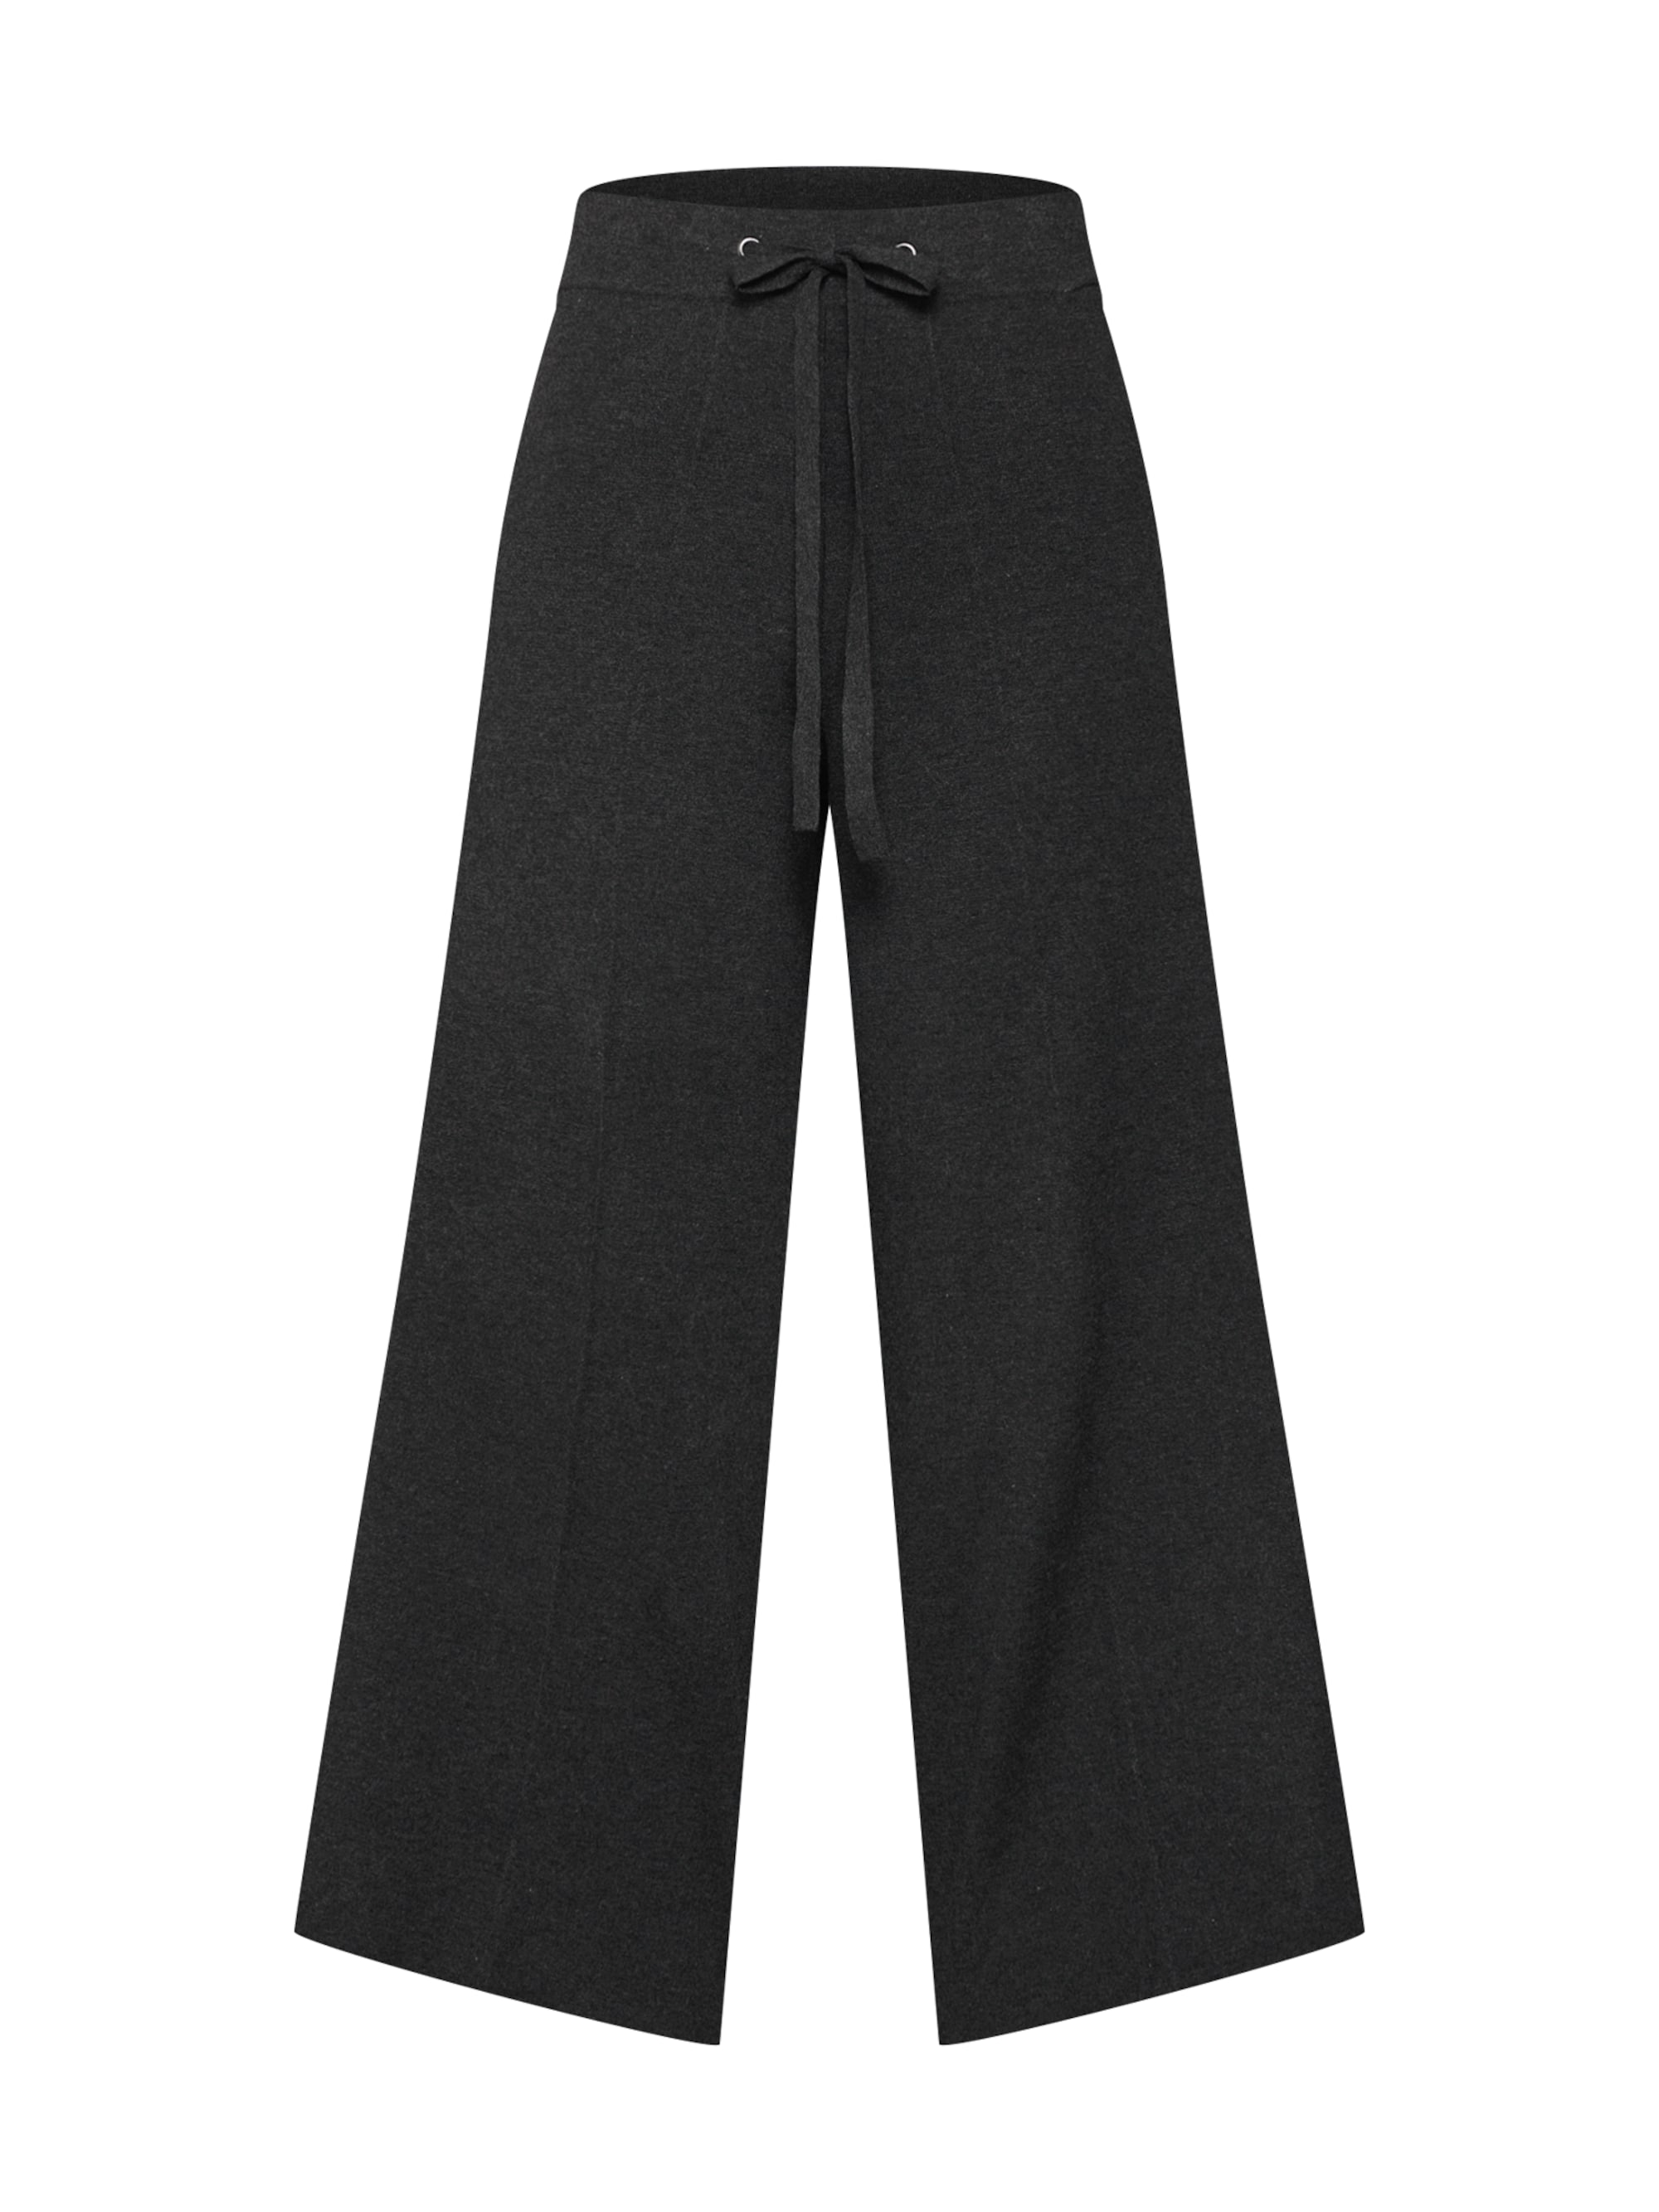 talkabout - Culotte